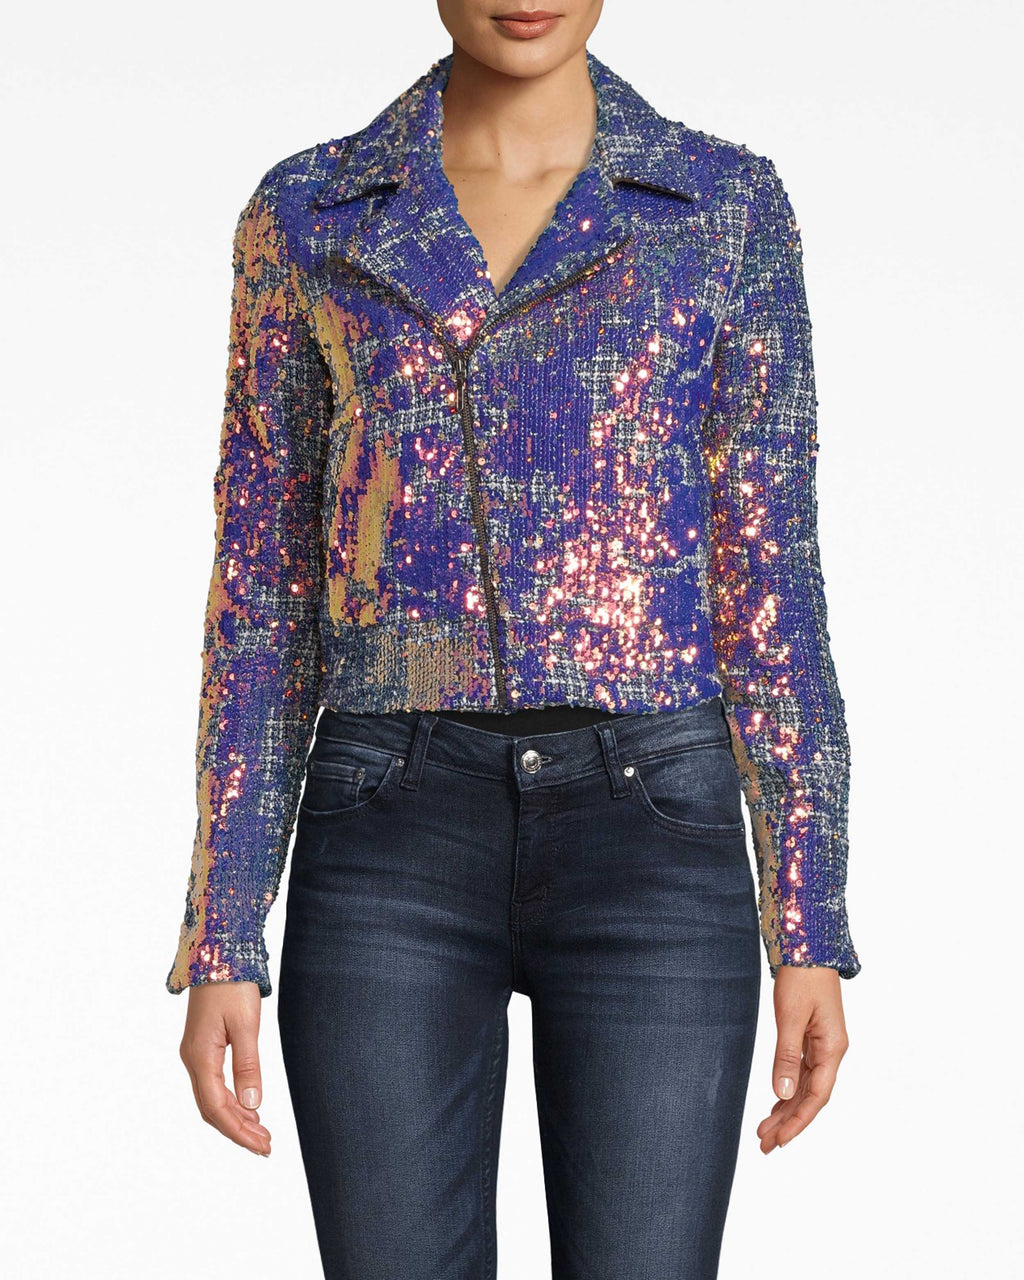 CE20016 - MOTO JACKET - outerwear - jackets - Sparkle baby. Our Moto Jacket is a sequin-covered update to the classic style. The wide collar opens up the shoulders. Asymmetrical front zip.